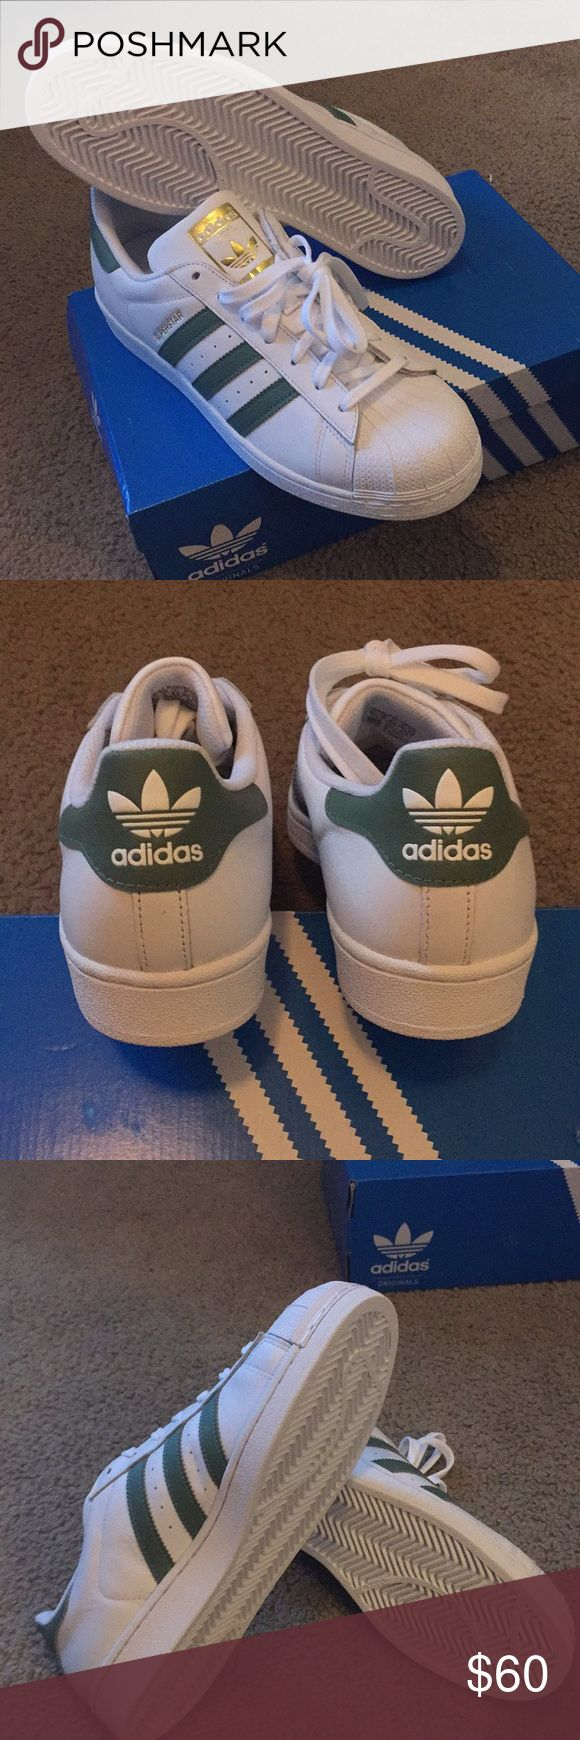 ADIDAS SUPERSTAR SHOES MENS ADIDAS SUPERSTAR SHOES    FTWWHT/ TRAGRN/ GOLDMT/ FTWBLA/ VERTRA/ CRMETA                  NEVER NEEN WORN, comes with box 🎁. (Runs half a size big in size) adidas Shoes Athletic Shoes